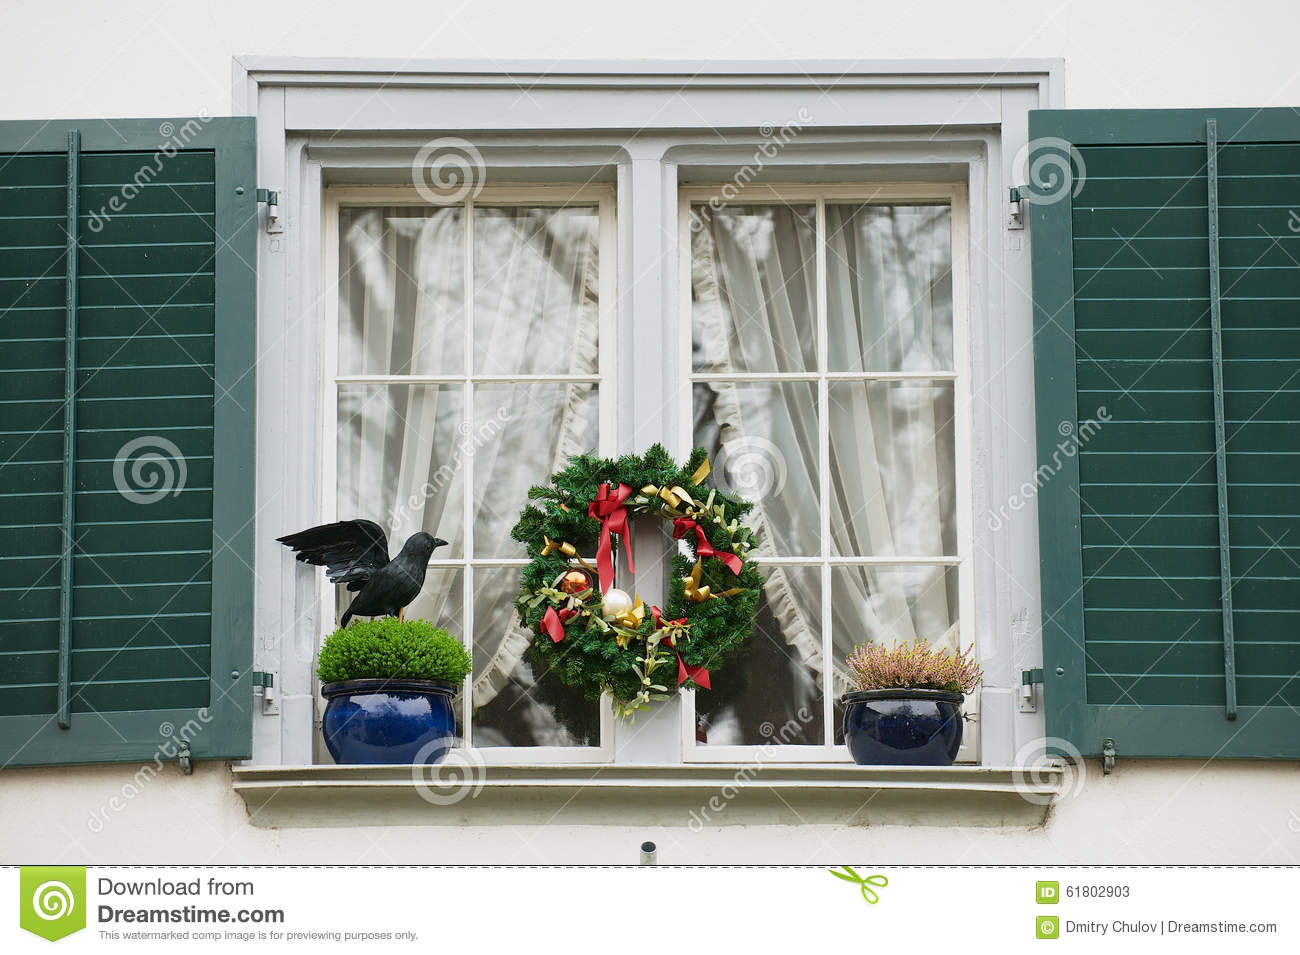 Exterior Of The Window With Christmas Decorations In